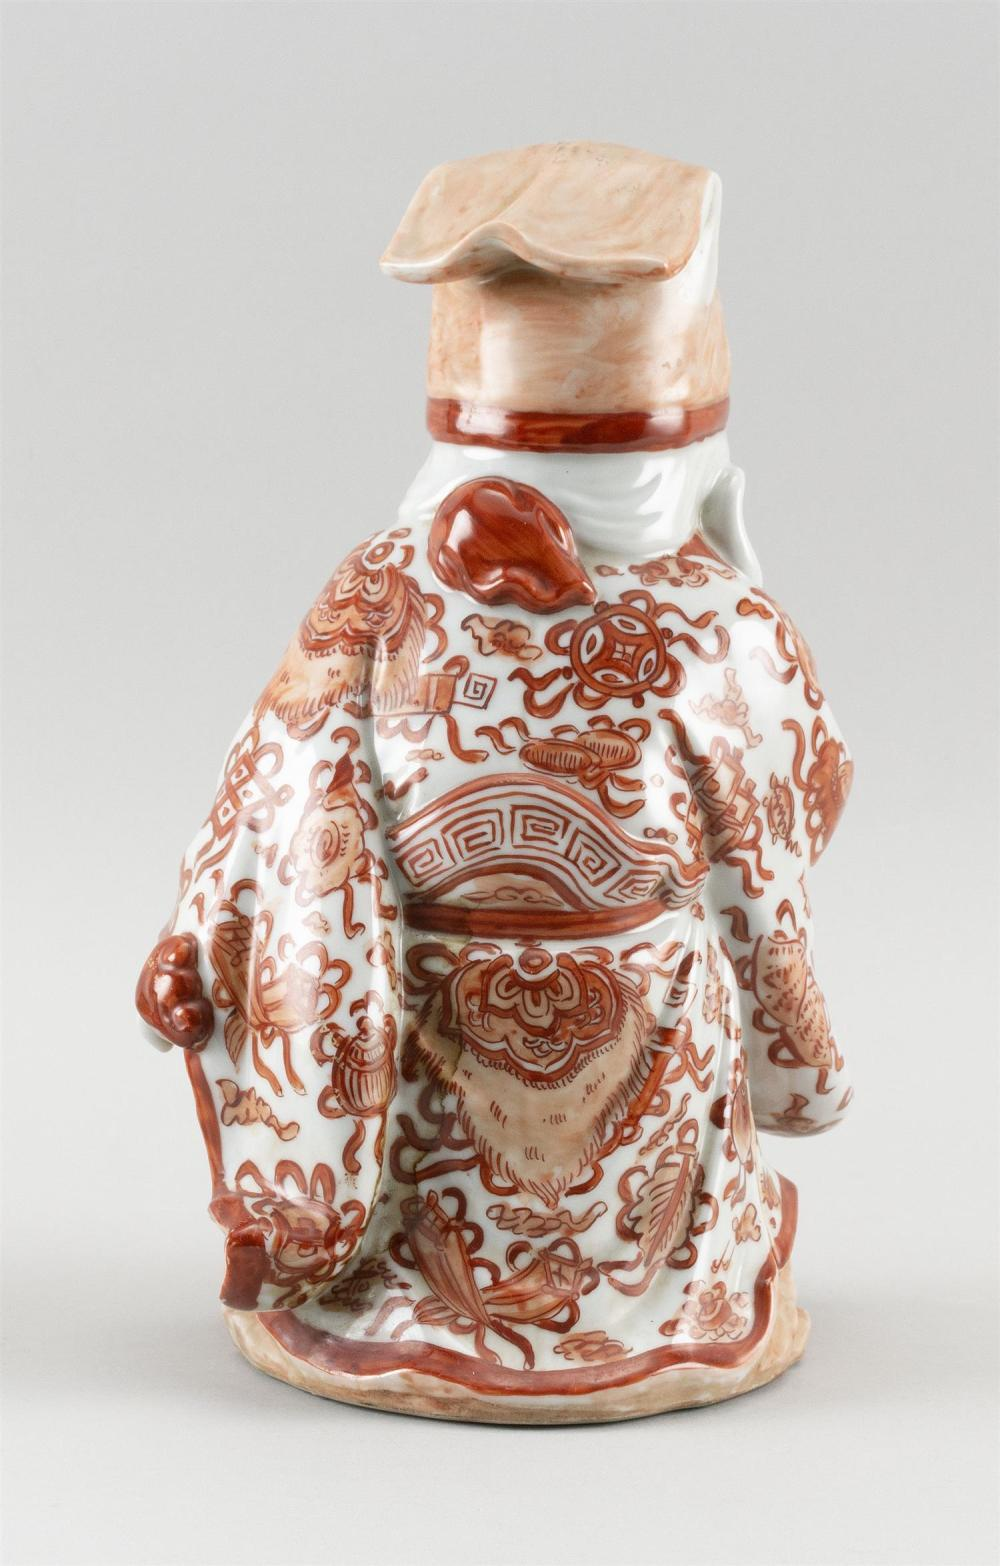 CHINESE PORCELAIN FIGURE OF SHOU-LAO In orange and white robes and holding a peach and a scepter. Height 11